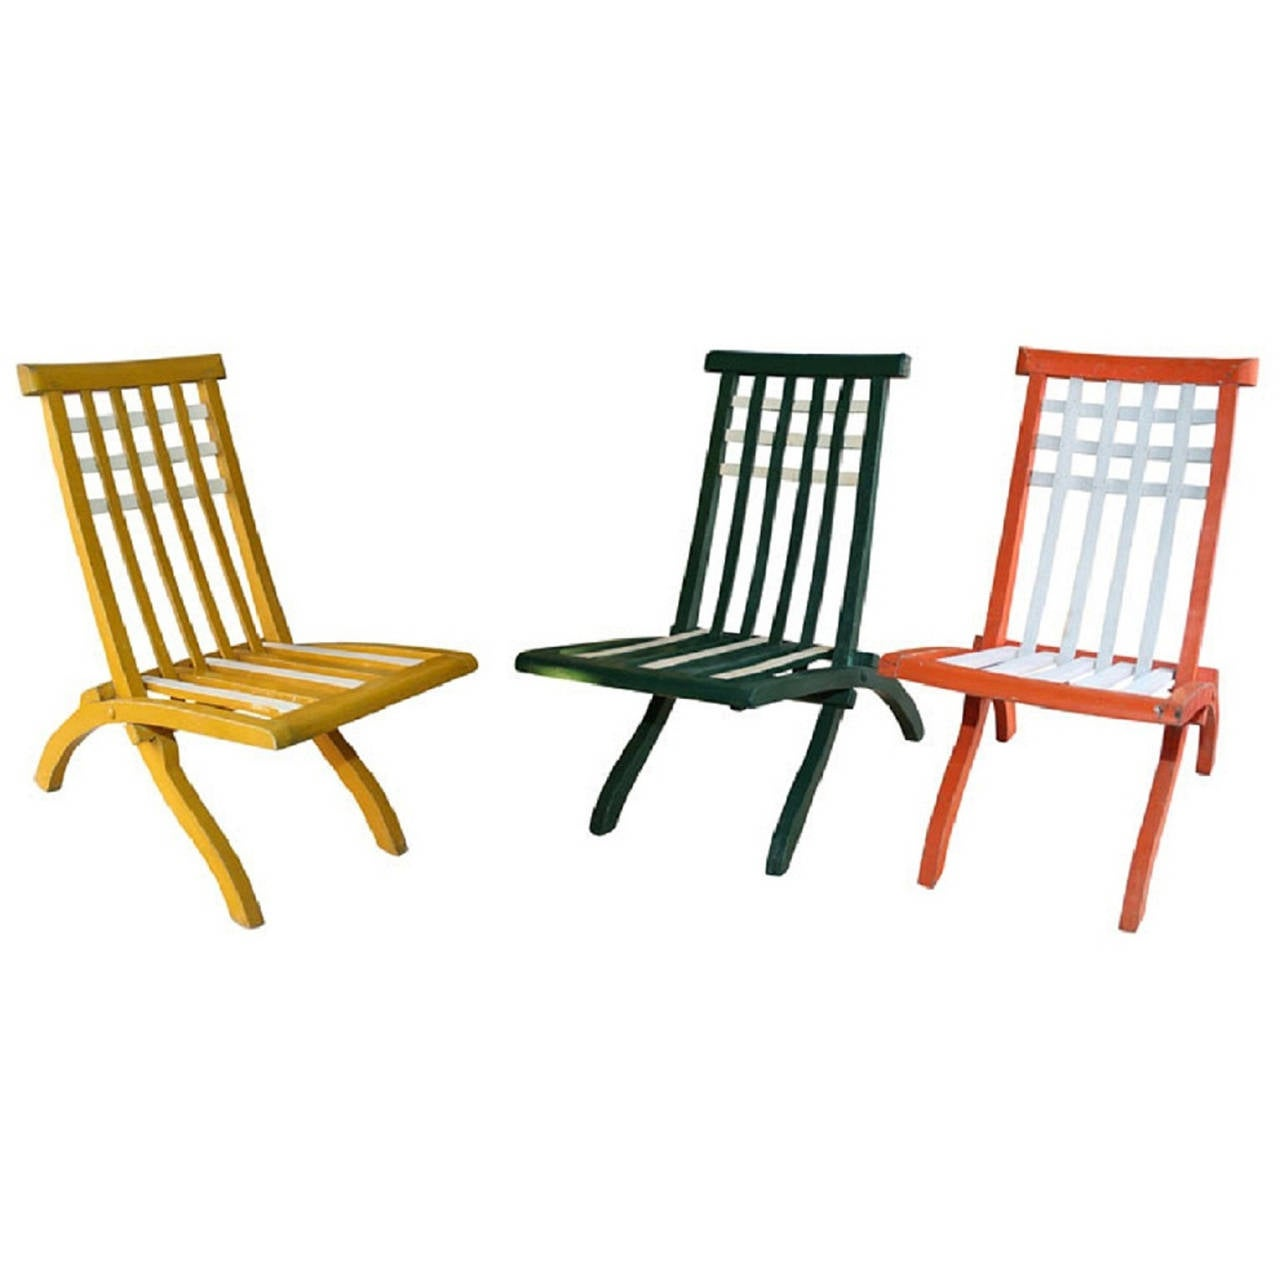 Set of Wooden Folding Chairs by MalletStevens French